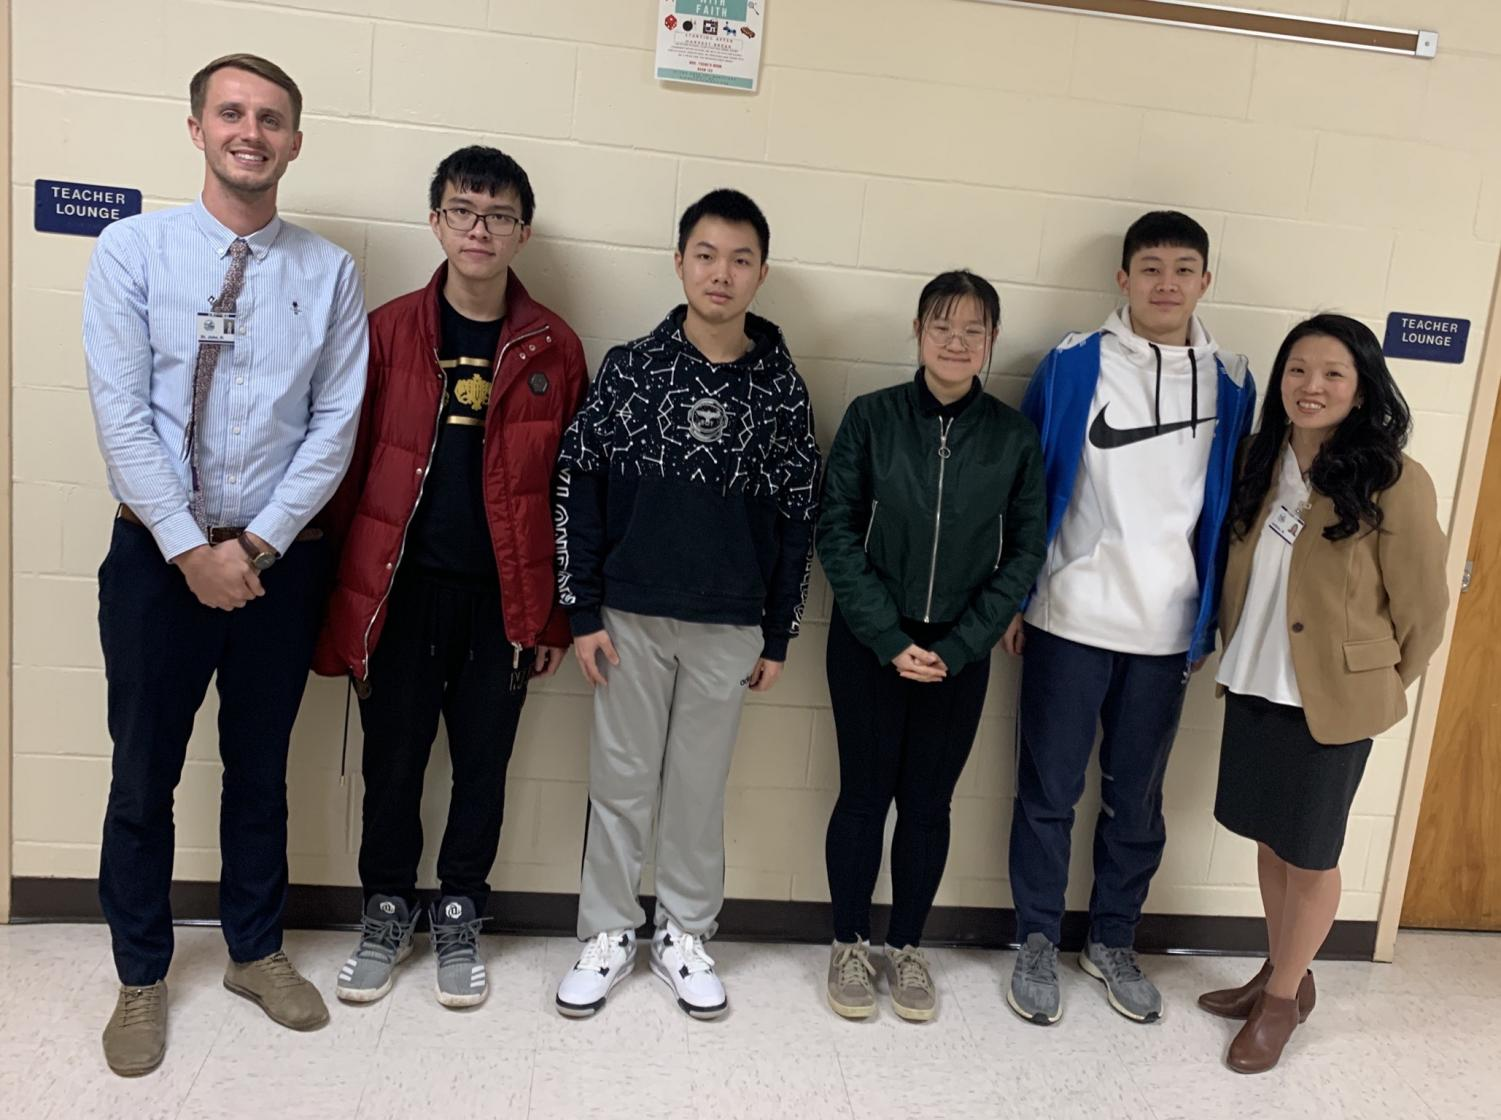 Left: David St. John, Gary Lin, Blaine Mo, Shadow Qin, Karry Gao, Melanie Junkins pose for a picture during St. John's first trip to PIHS.